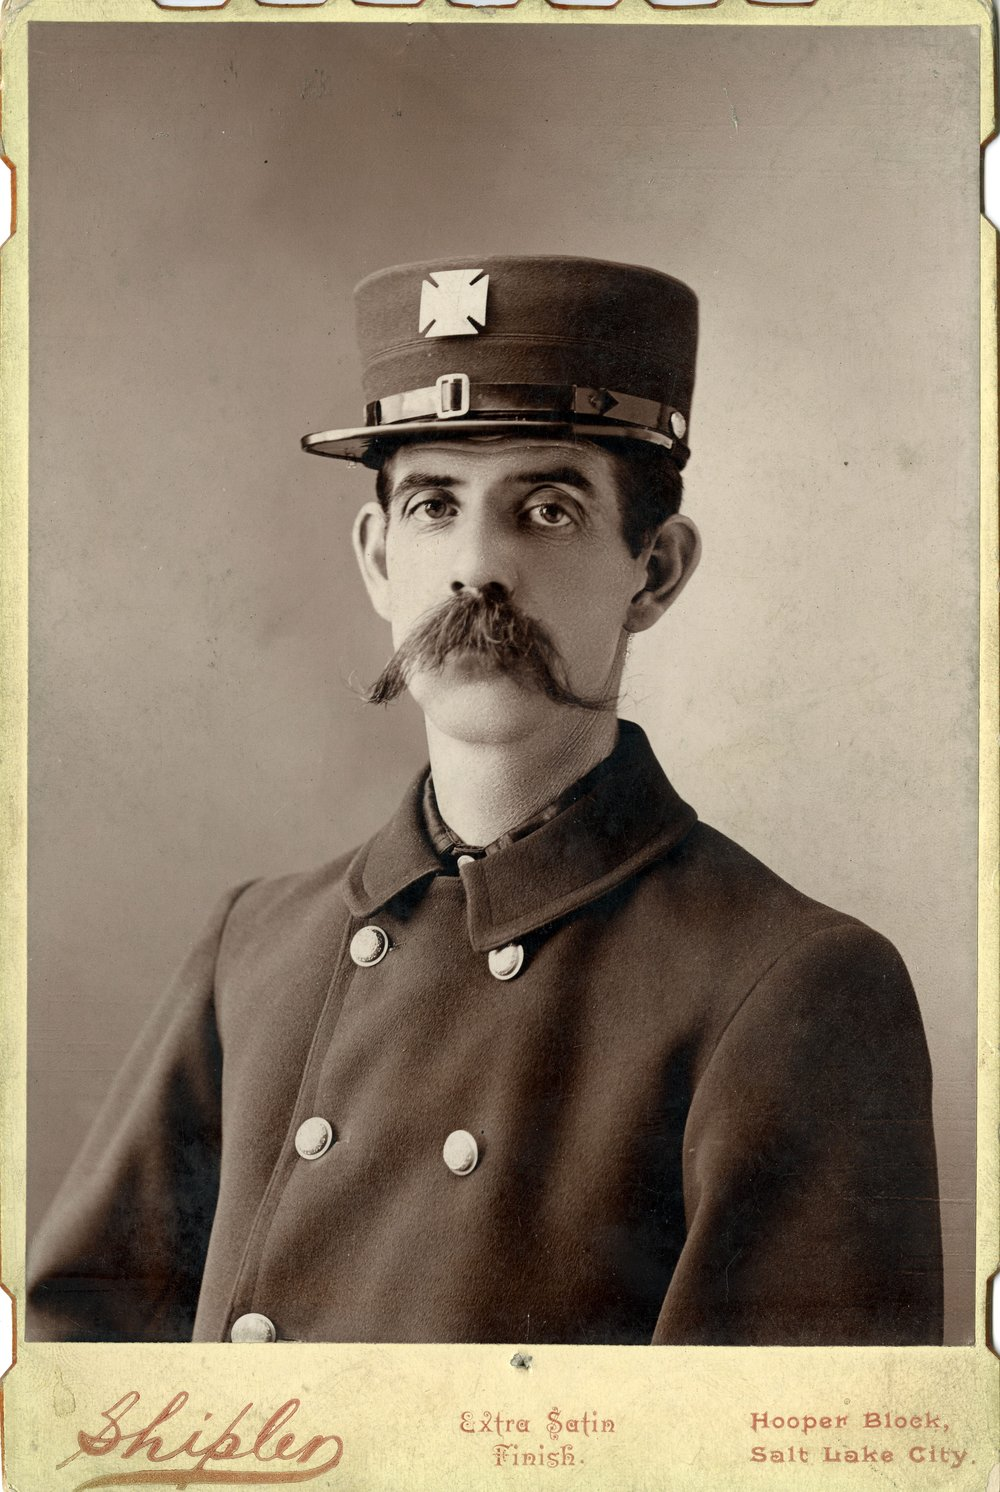 PORTRAIT OF W.S. HIGHAM (SERIES 23526). IMAGE COURTESY OF THE UTAH STATE ARCHIVES AND RECORDS SERVICE.